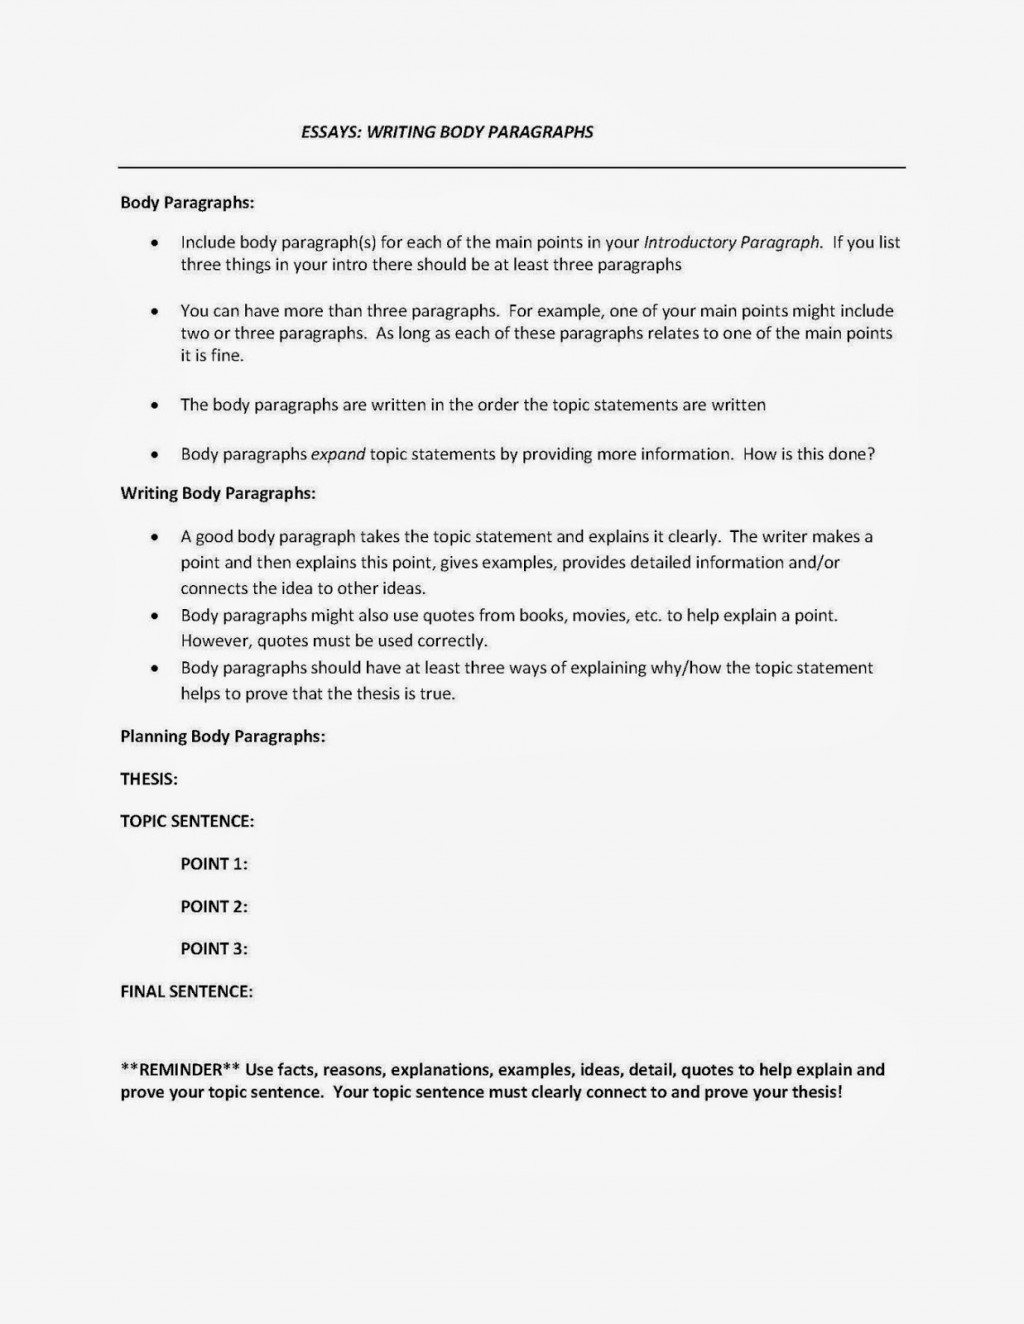 008 Essay Example En8 Bodyparagraphs The Fearsome Giver Topics Ideas Questions Large